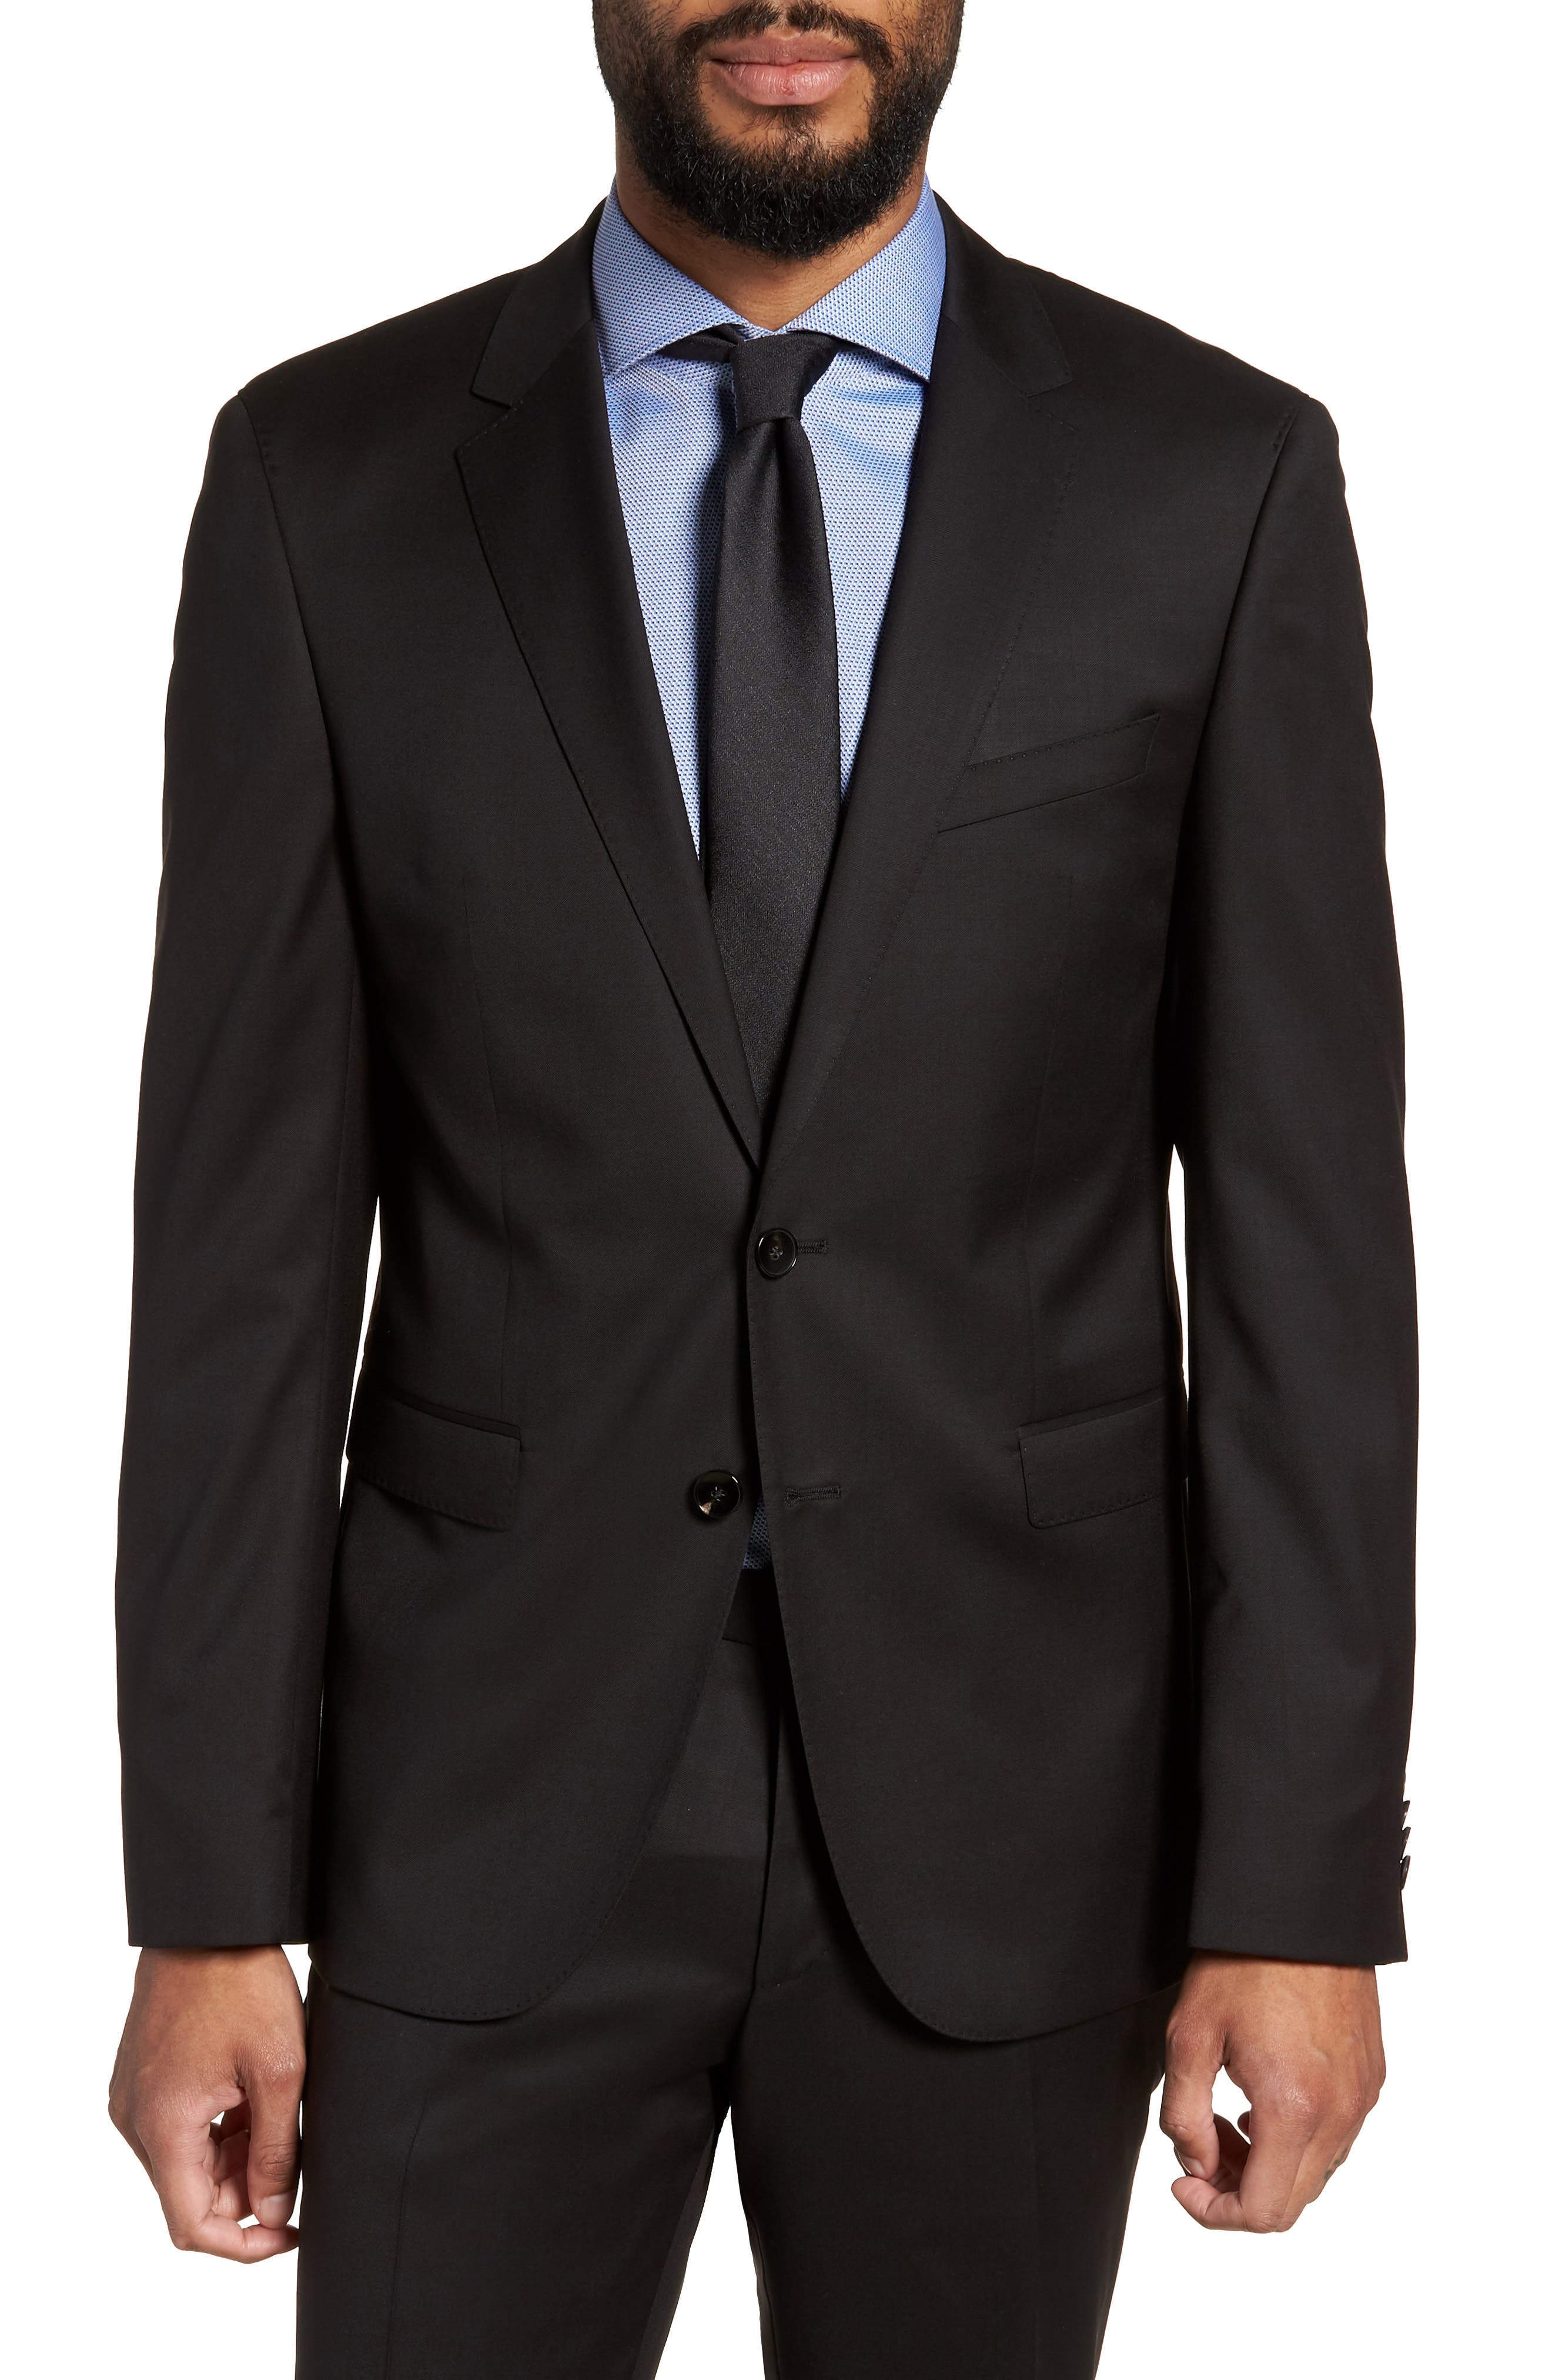 Ryan CYL Extra Trim Fit Solid Wool Blazer,                             Main thumbnail 1, color,                             BLACK